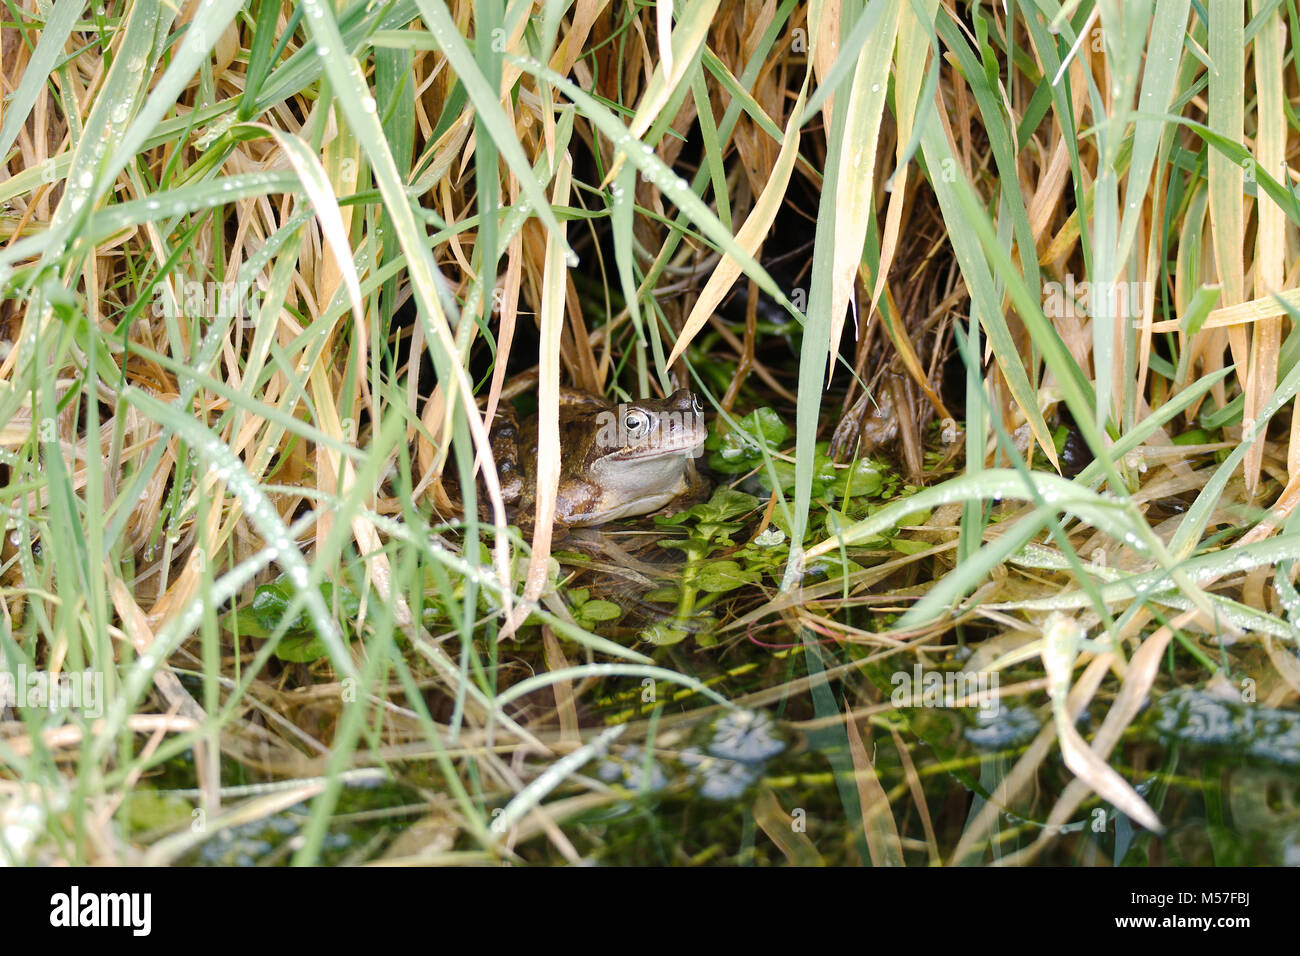 A common frog semi-submerged in a pond sheltering under some grass. - Stock Image